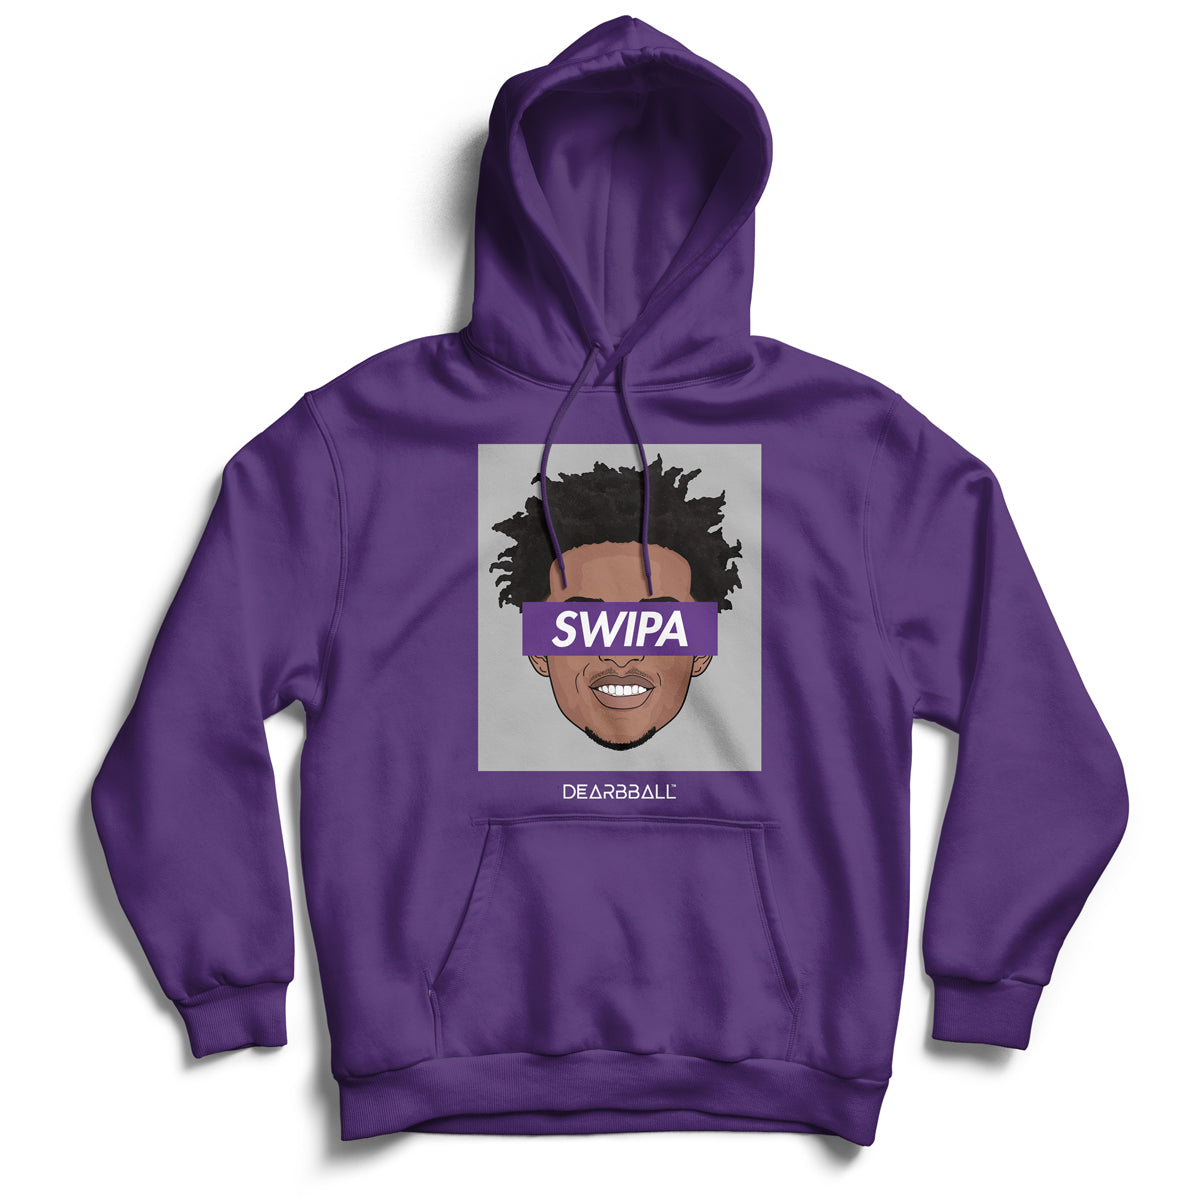 De'aaron_Fox_hoodie_SWIPA_Sacramento_Kings_dearbball_purple